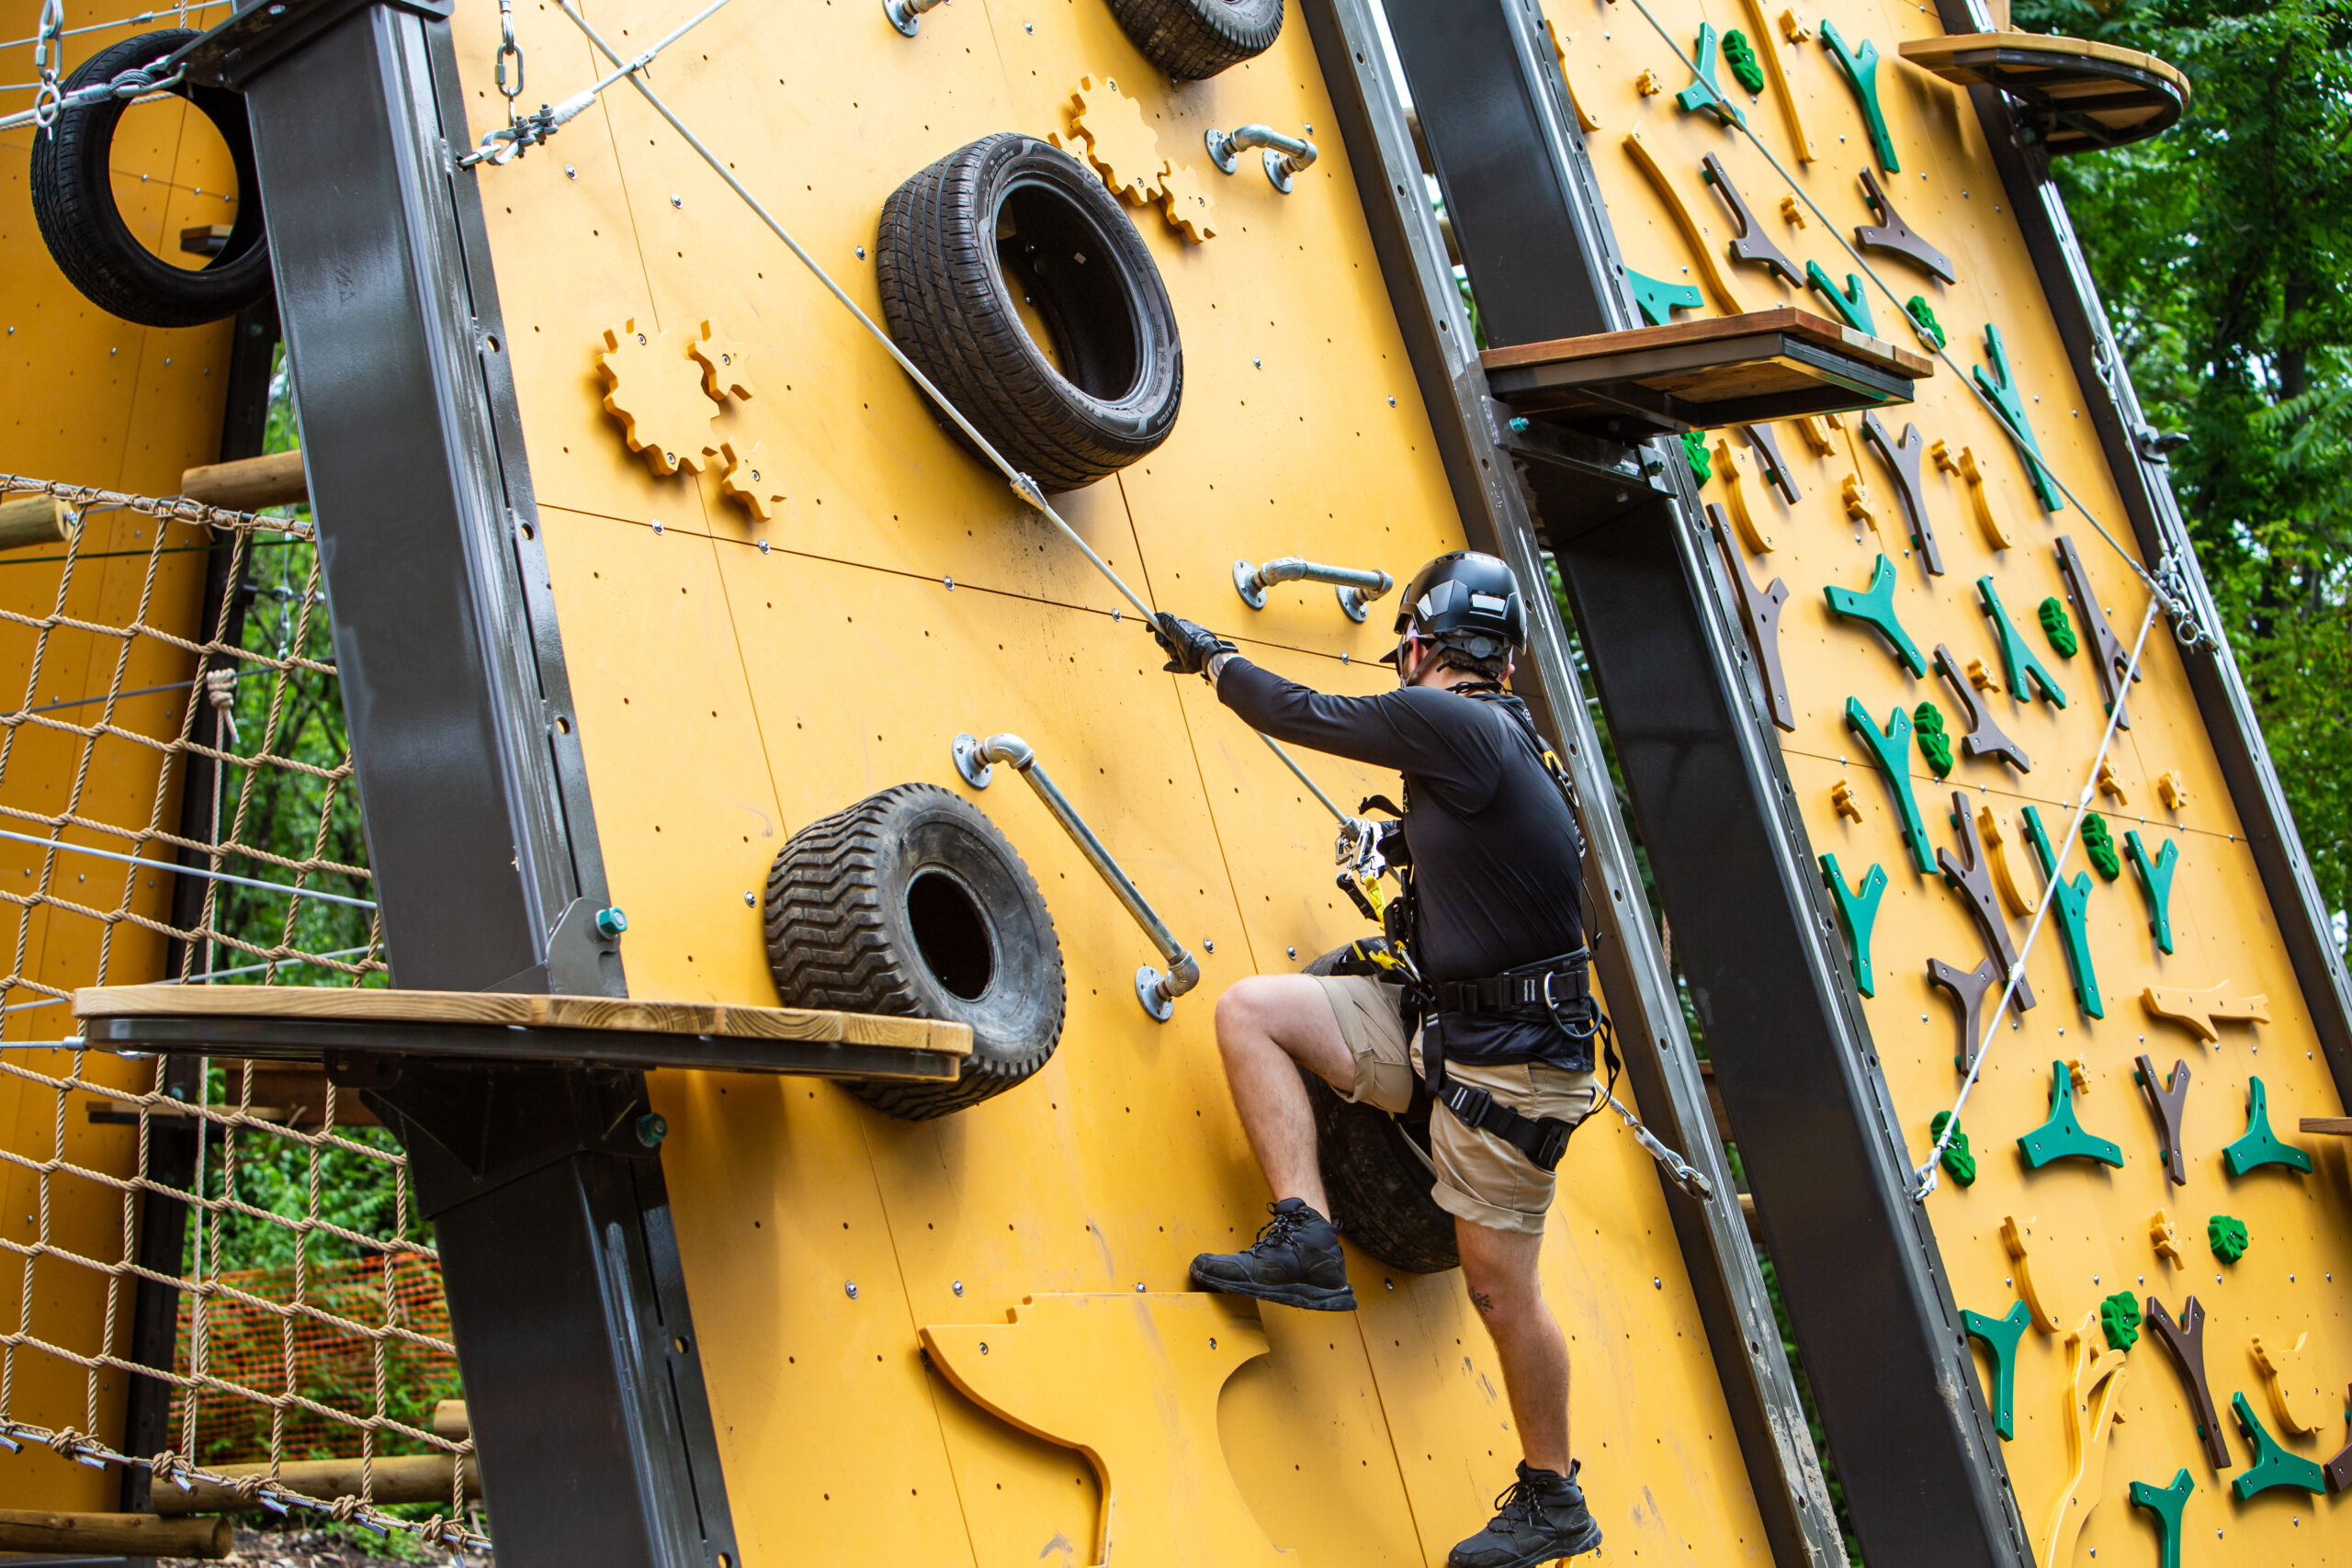 Man scaling expert climbing wall at The Forge: Lemont Quarries outside Chicago